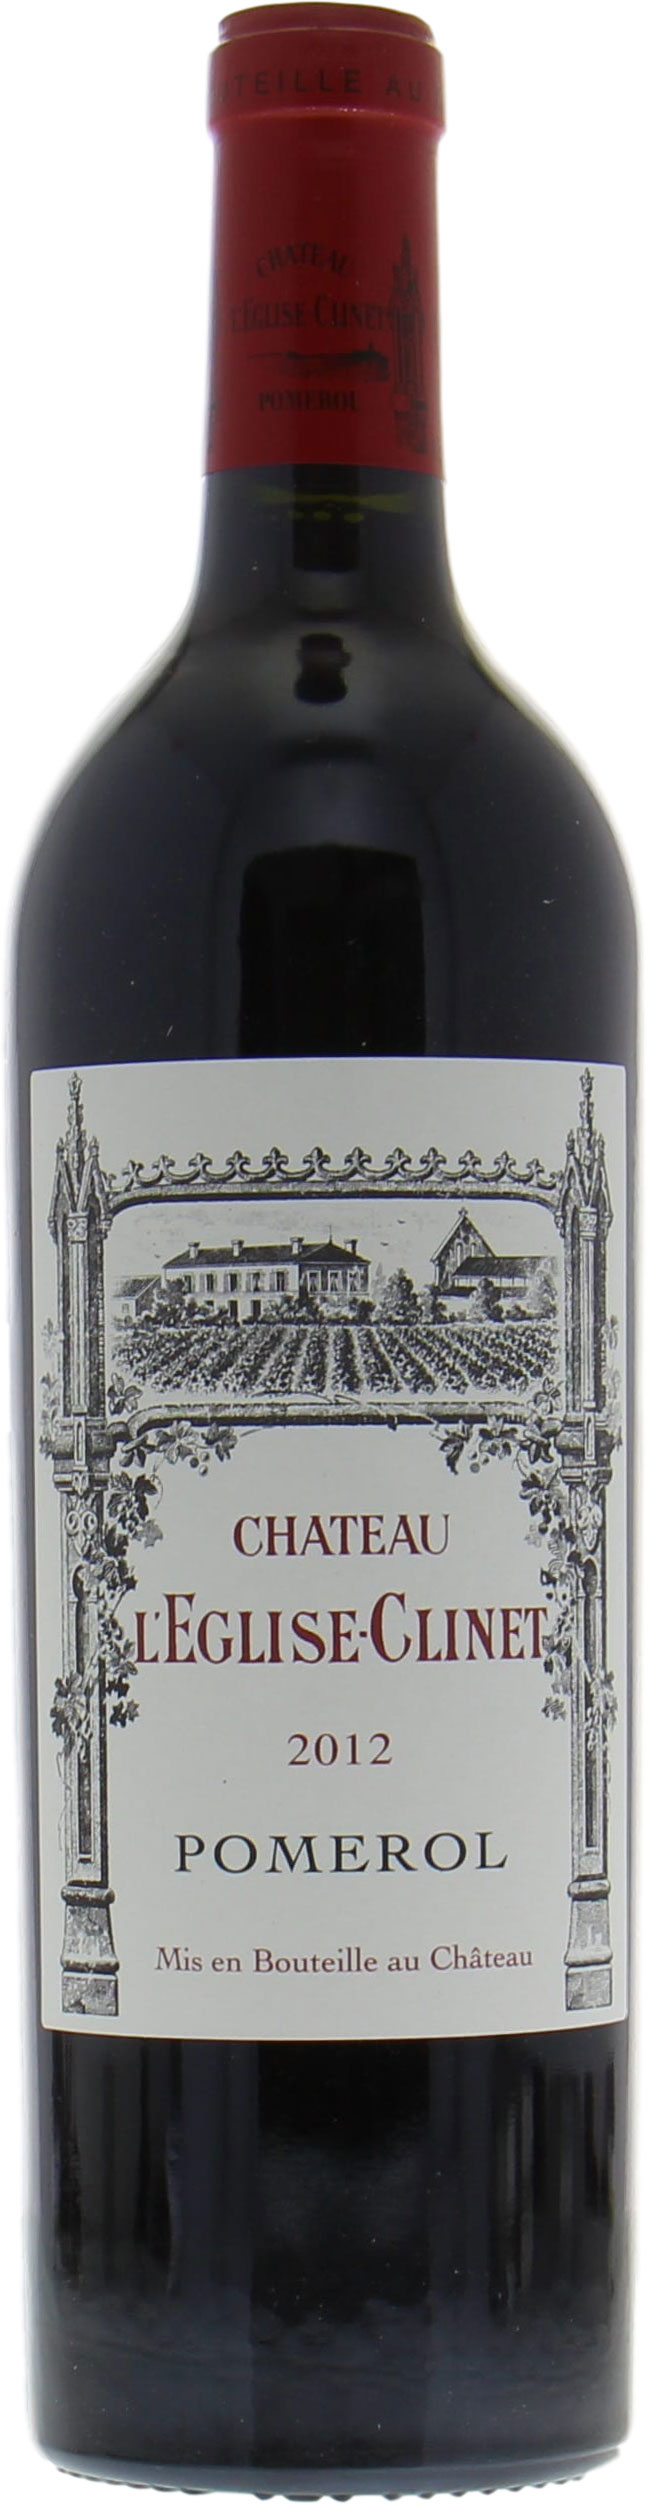 Chateau Eglise Clinet - Chateau Eglise Clinet 2012